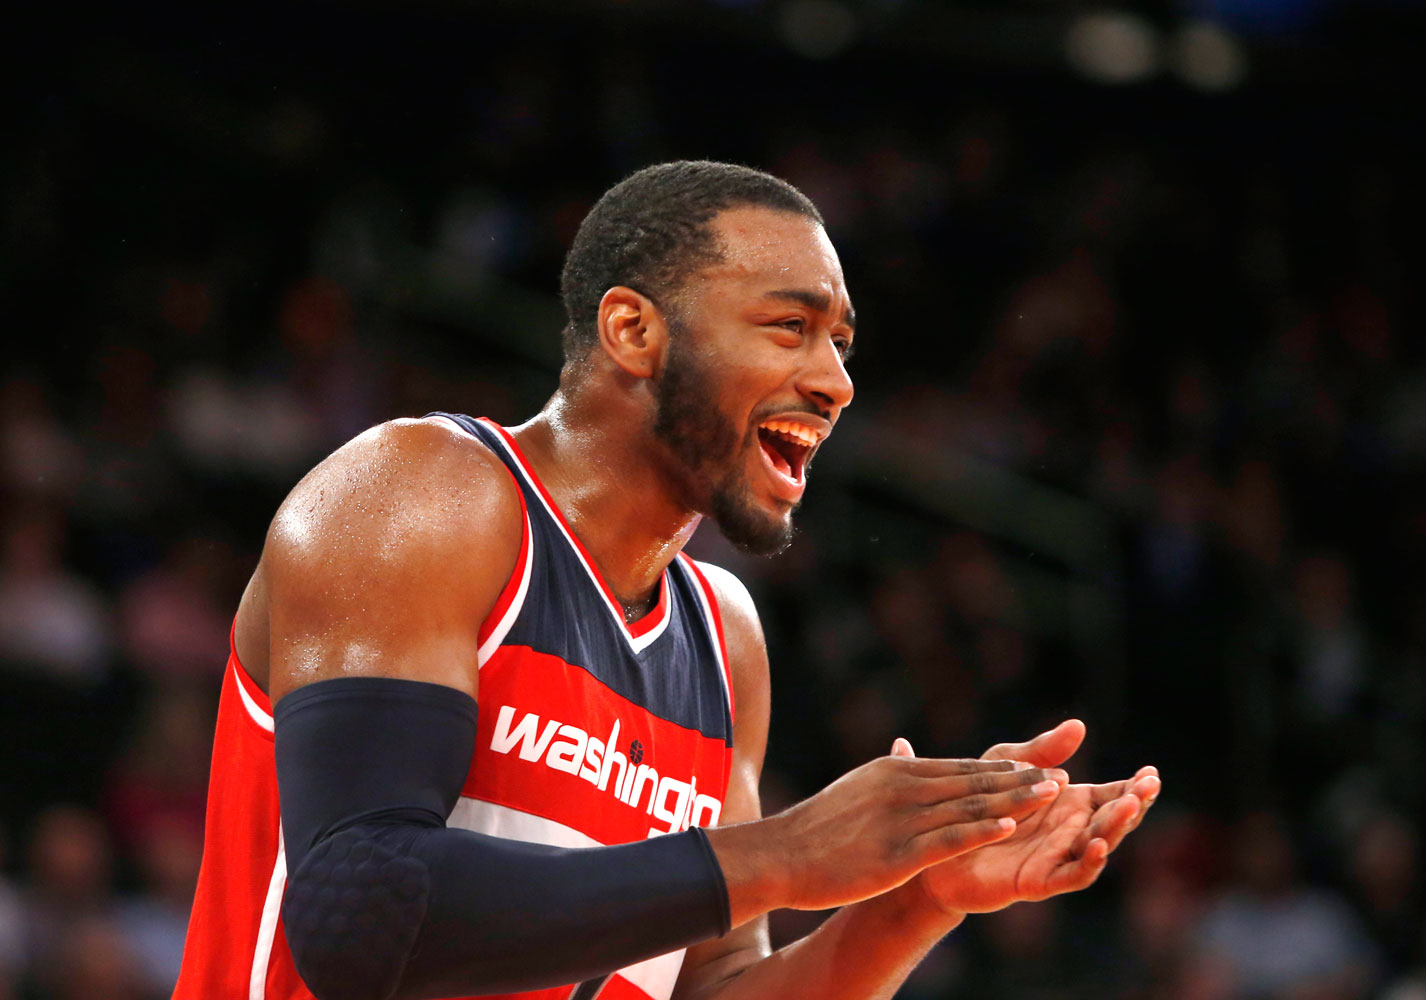 Commitment? Please. John Wall's ready to mingle